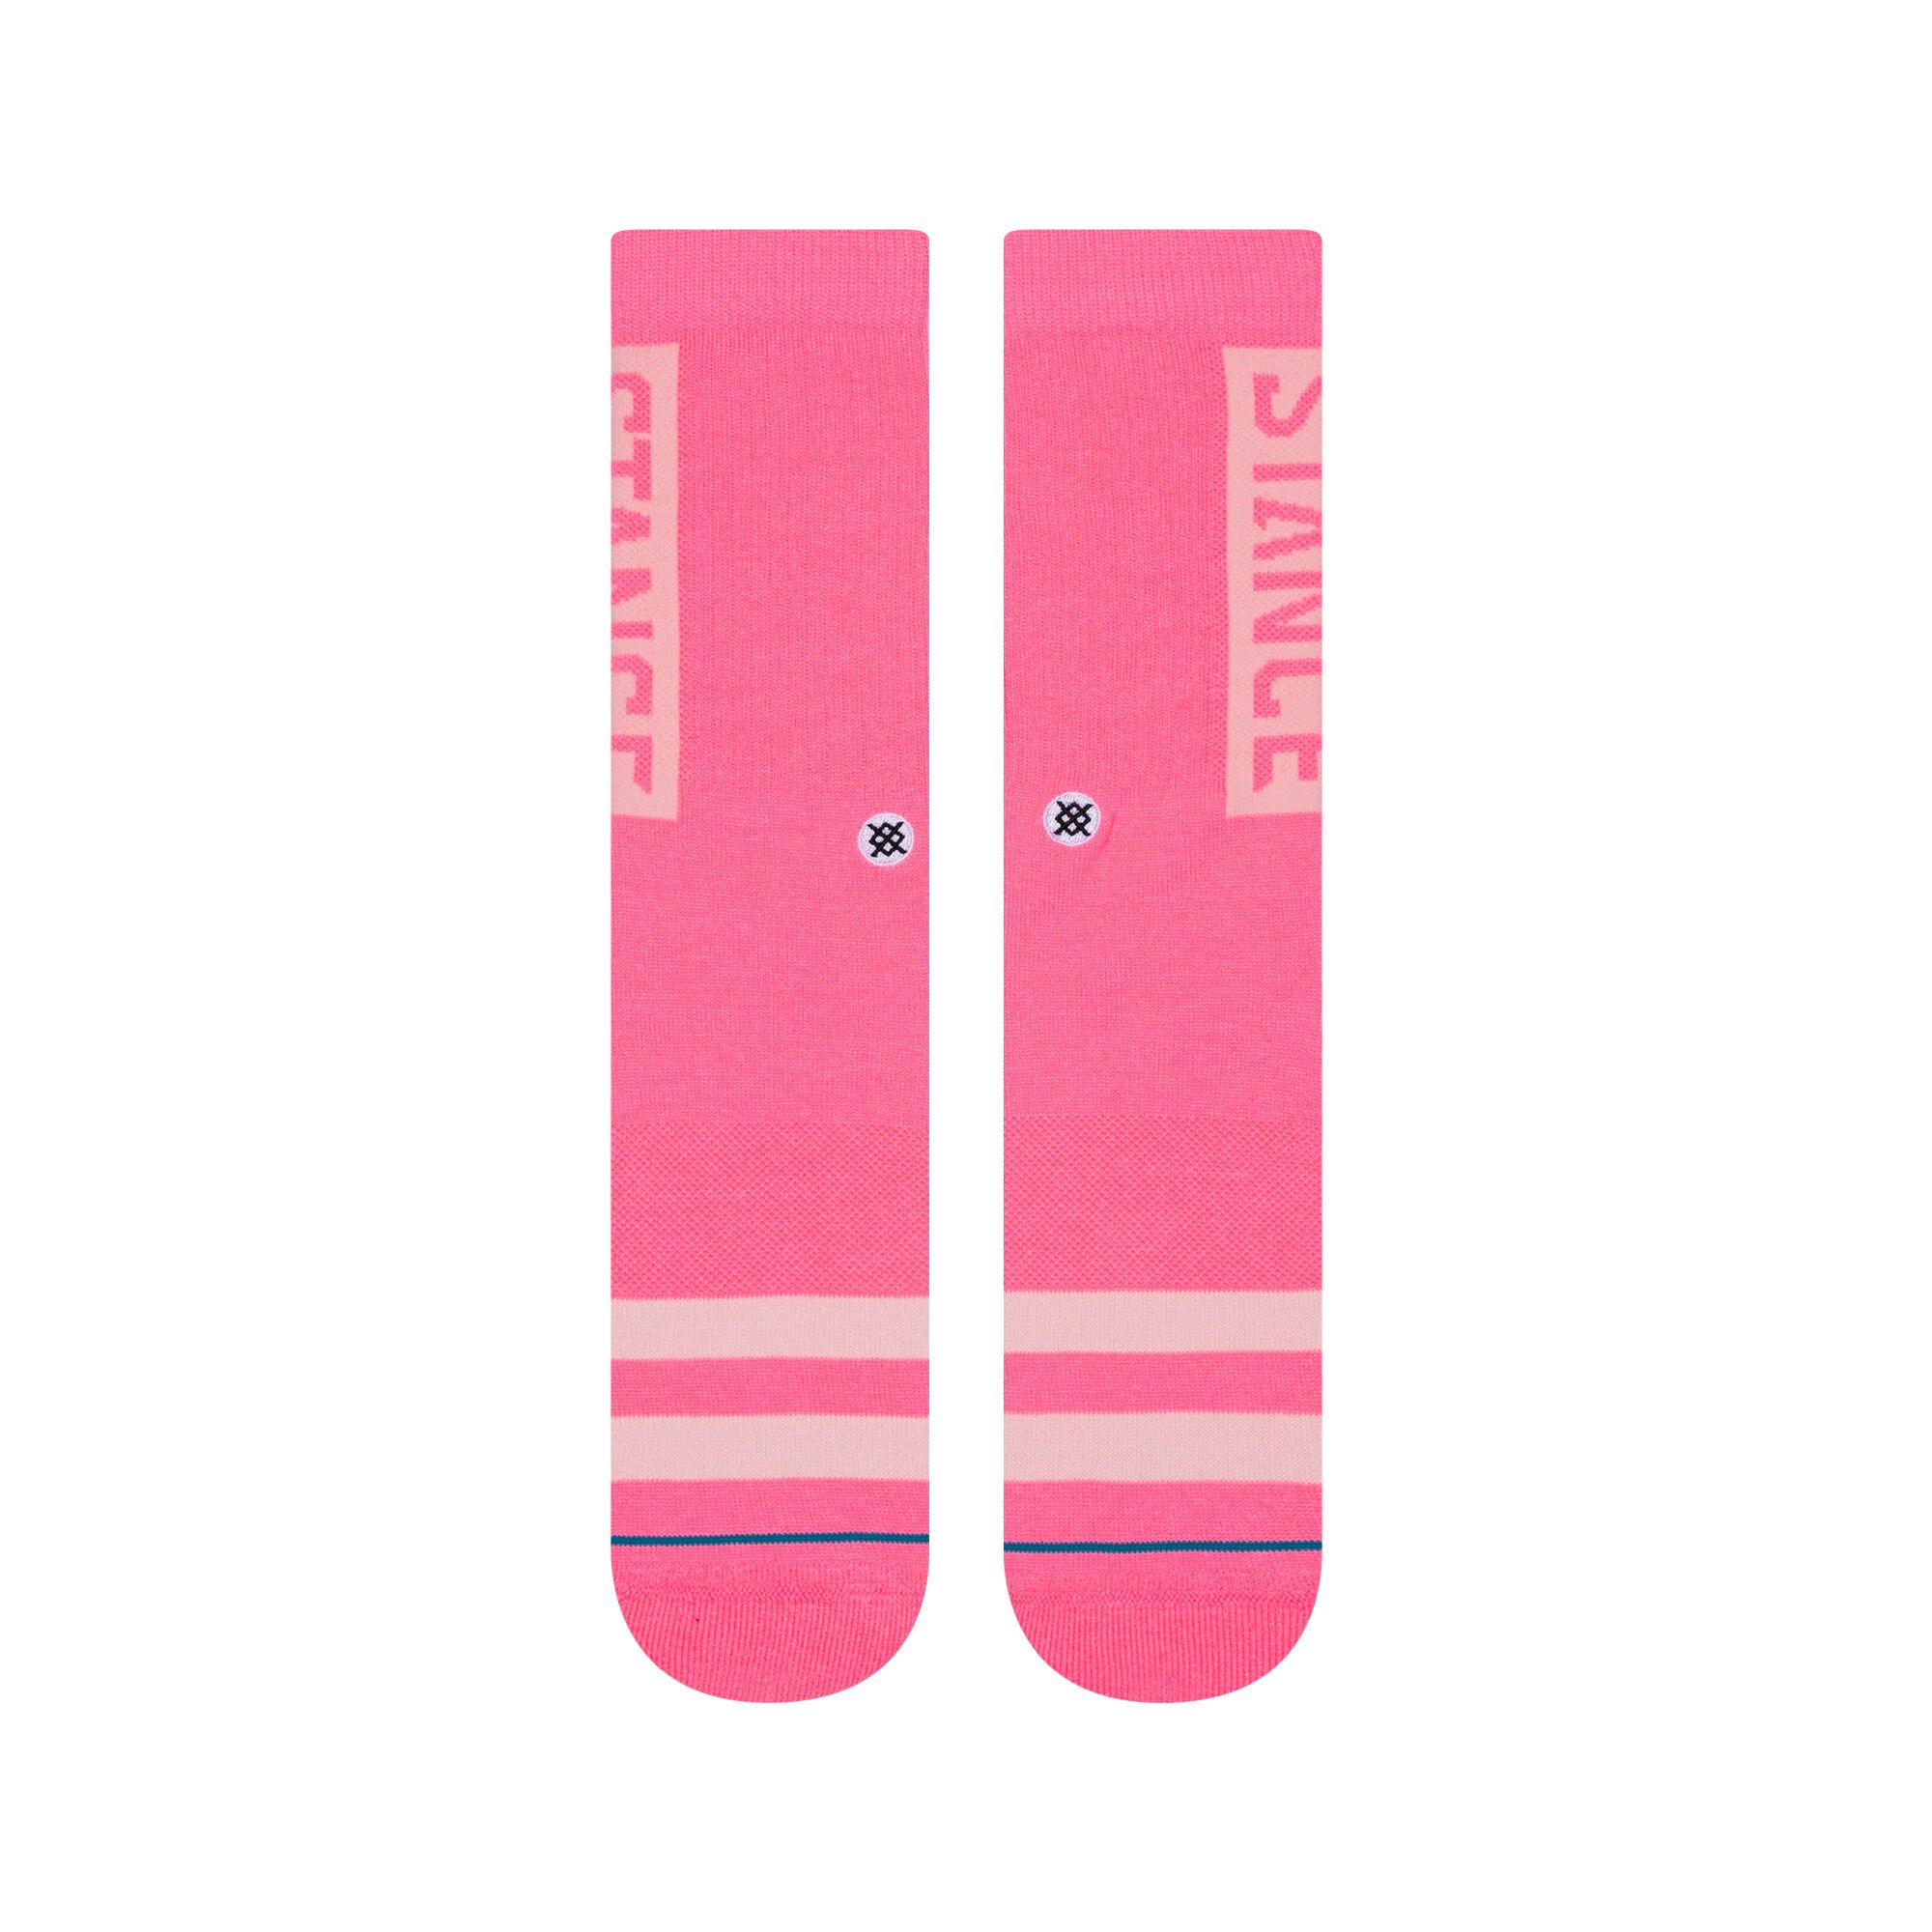 Calcetin Stance OG Pink Accesorios FroensCL